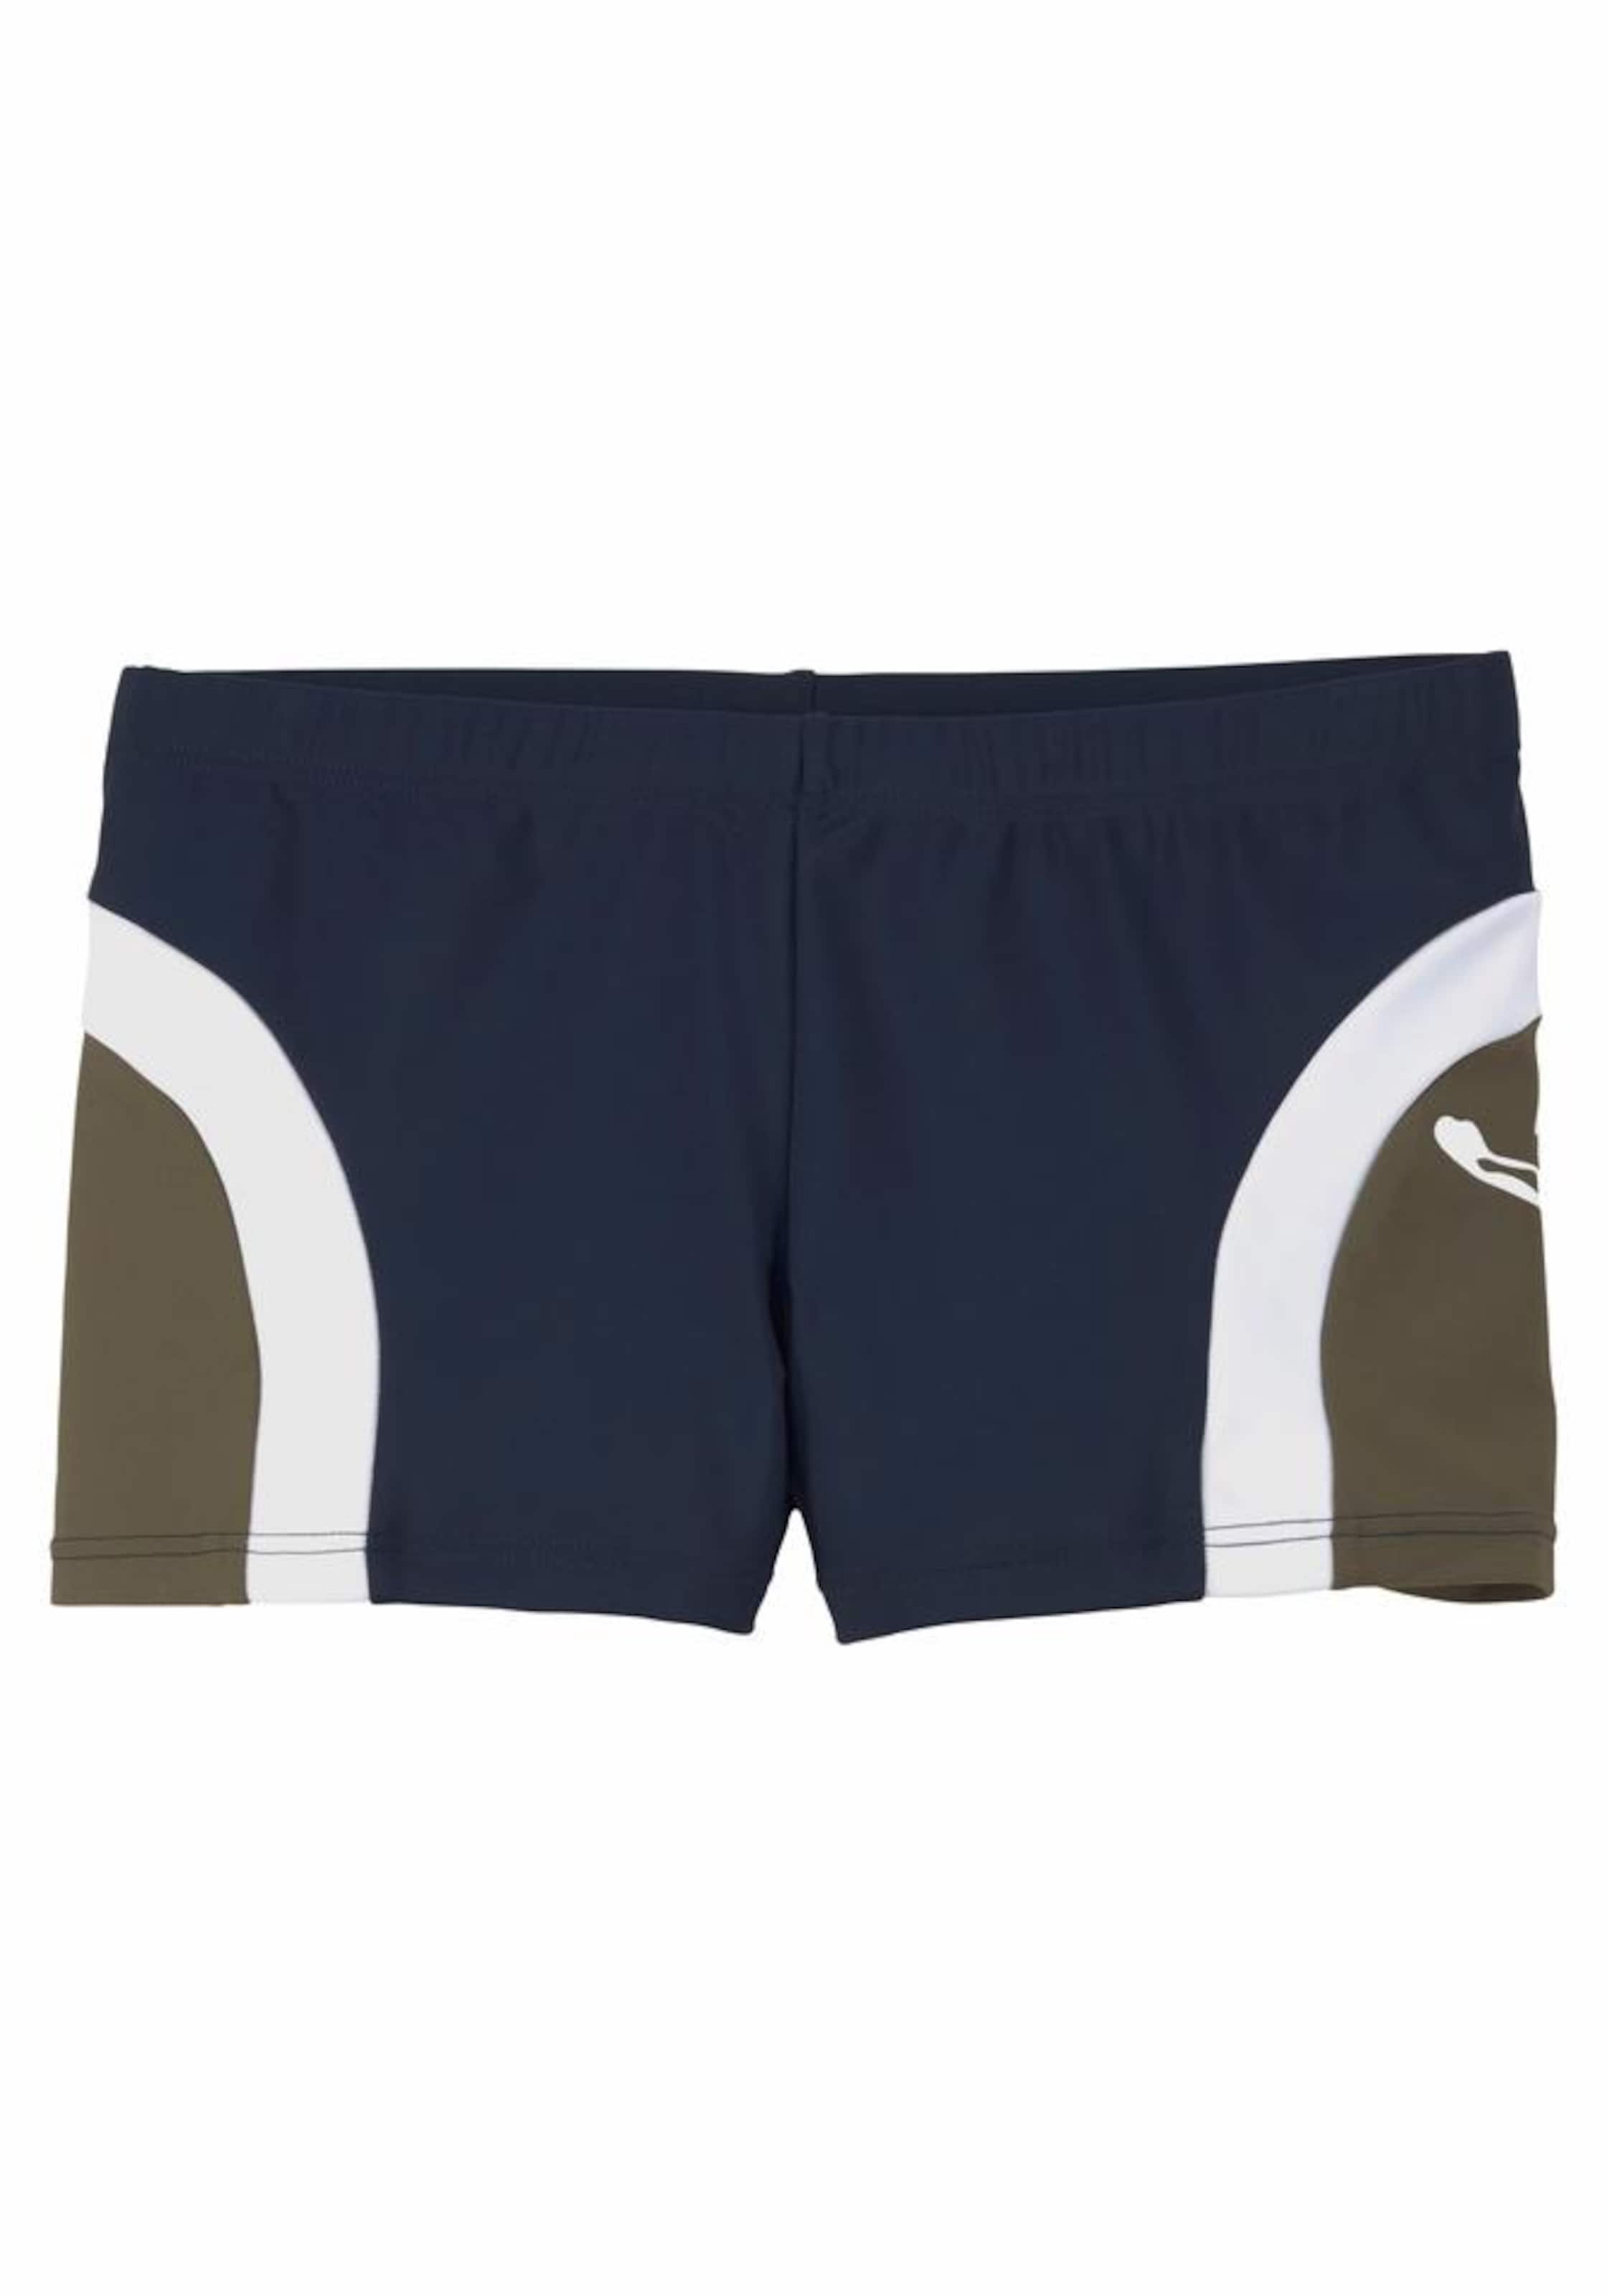 Chiemsee In Navy Chiemsee badehose In Boxer Navy badehose Boxer Chiemsee xCoBdrWe